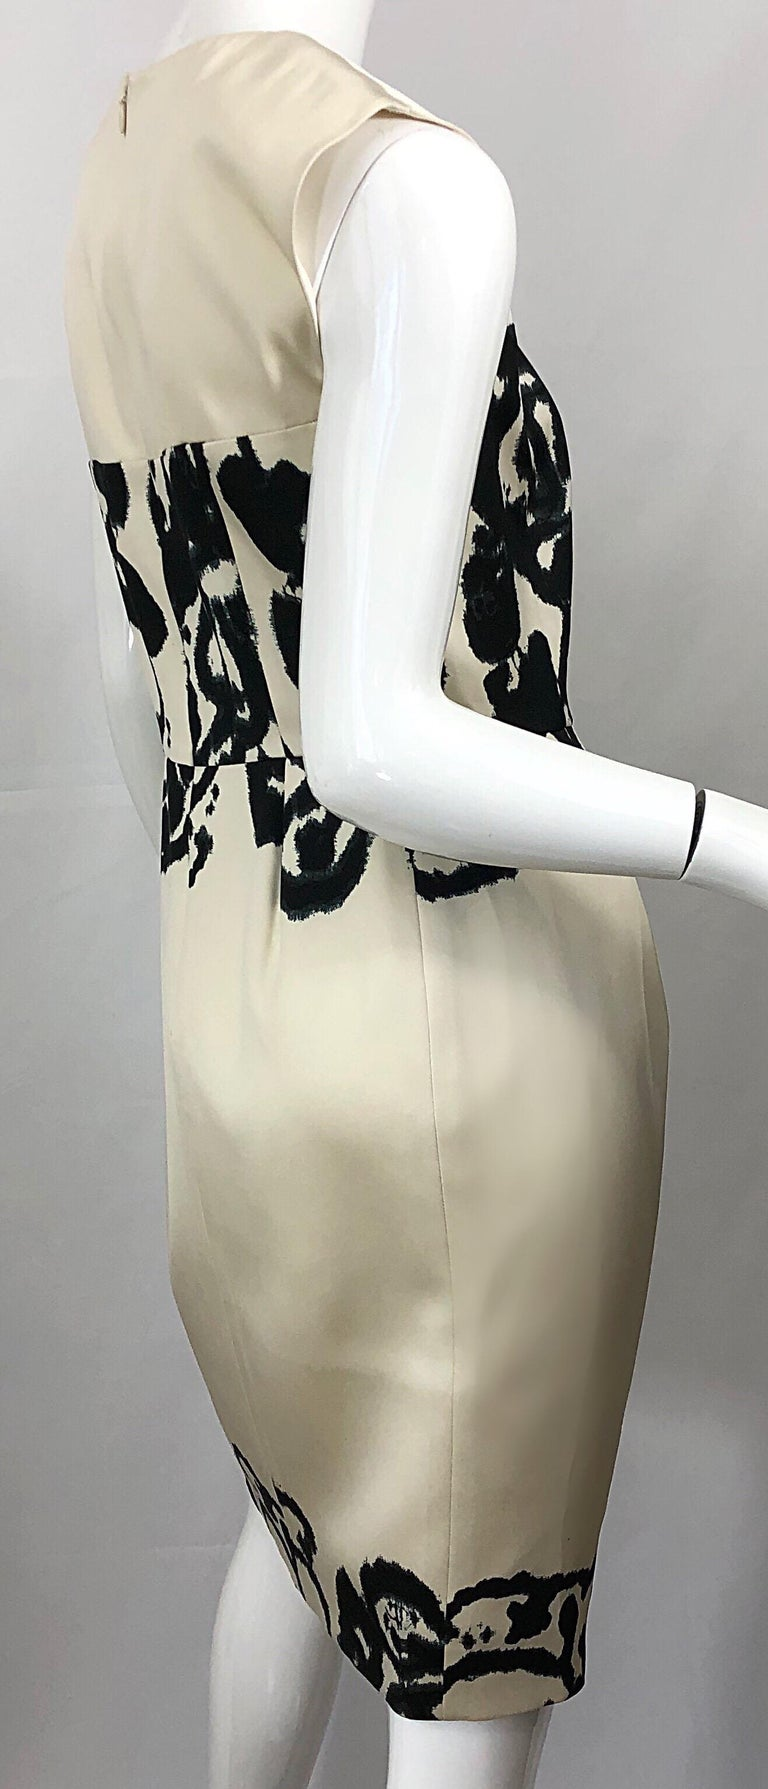 New Yves Saint Laurent Size 42 / 8-10 Ivory and Black Abstract Print Silk Dress For Sale 4